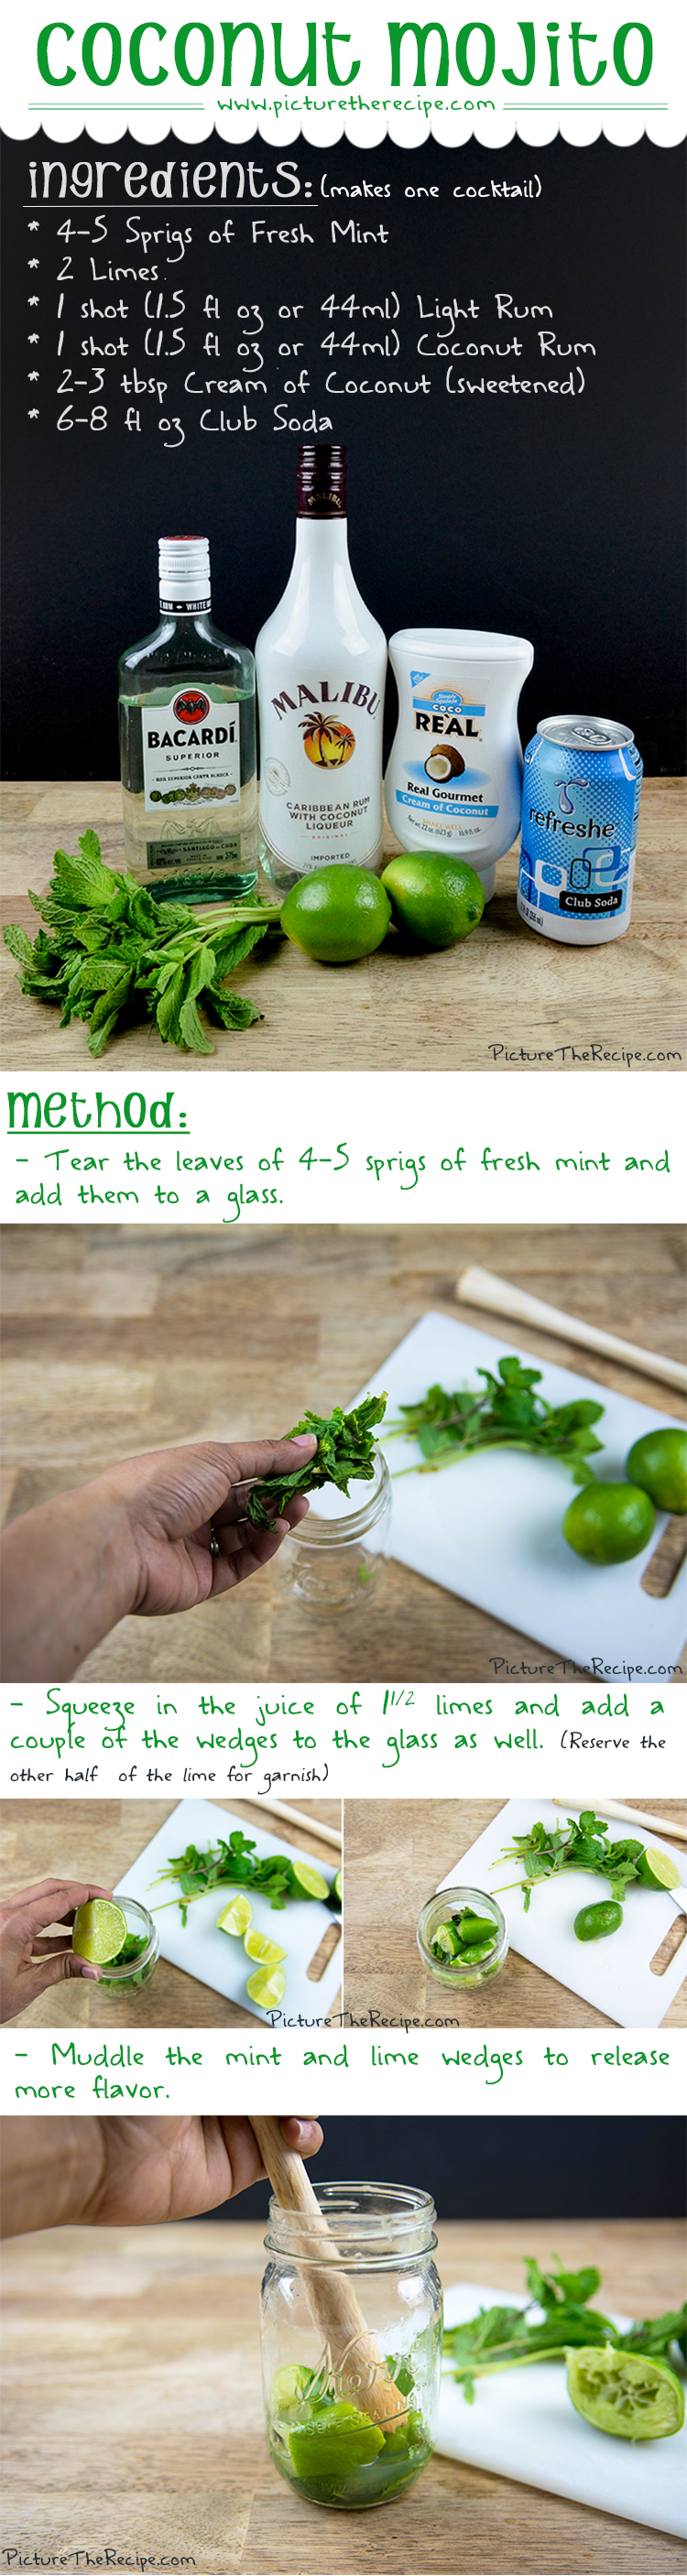 Coconut Mojito Recipe by PictureTheRecipe com Part-1